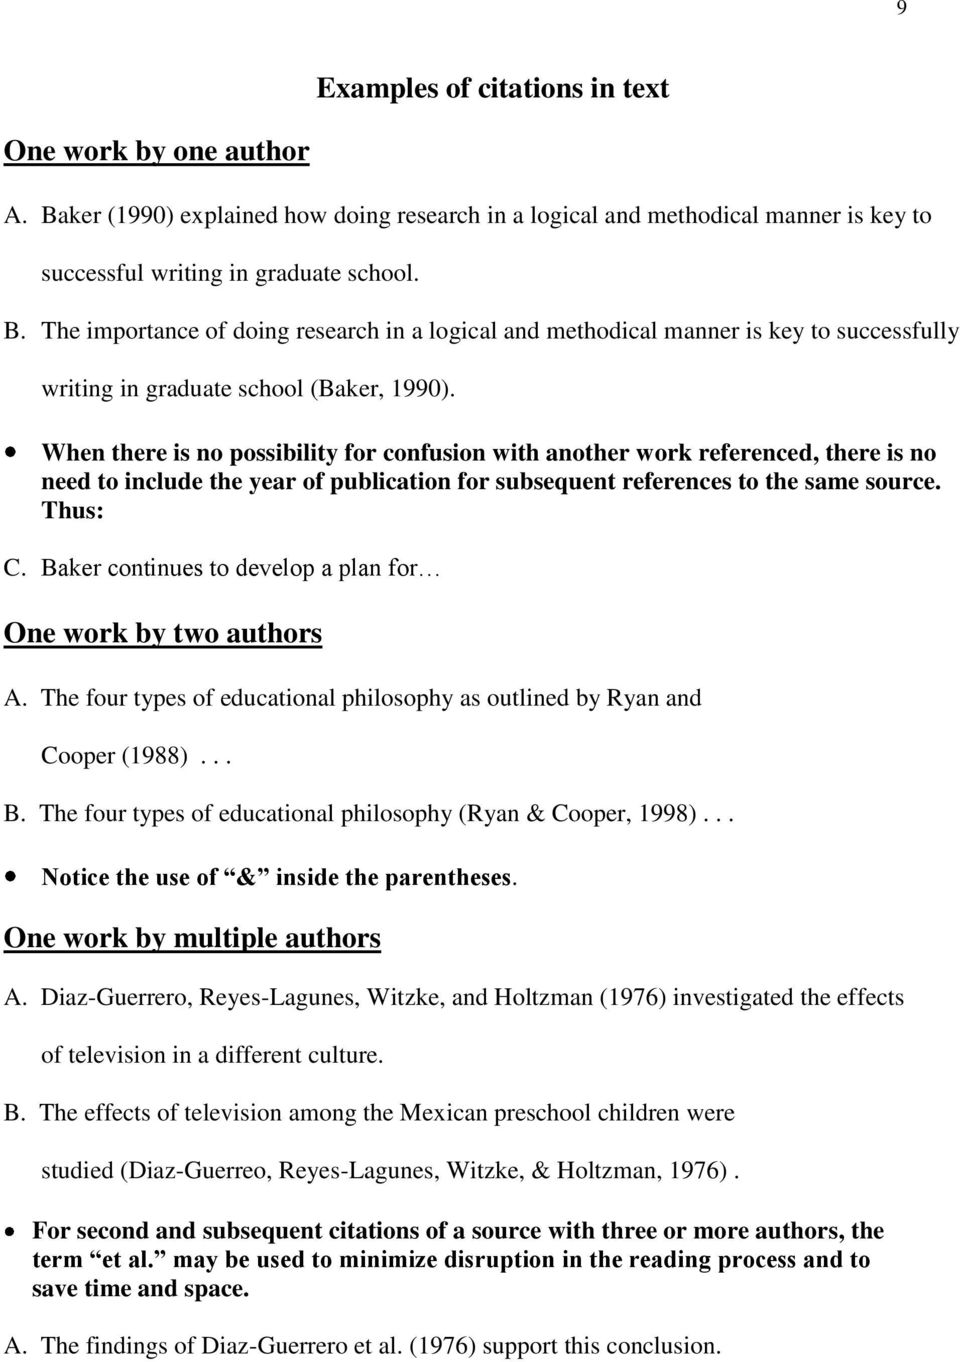 Baker continues to develop a plan for One work by two authors A. The four types of educational philosophy as outlined by Ryan and Cooper (1988)... B.